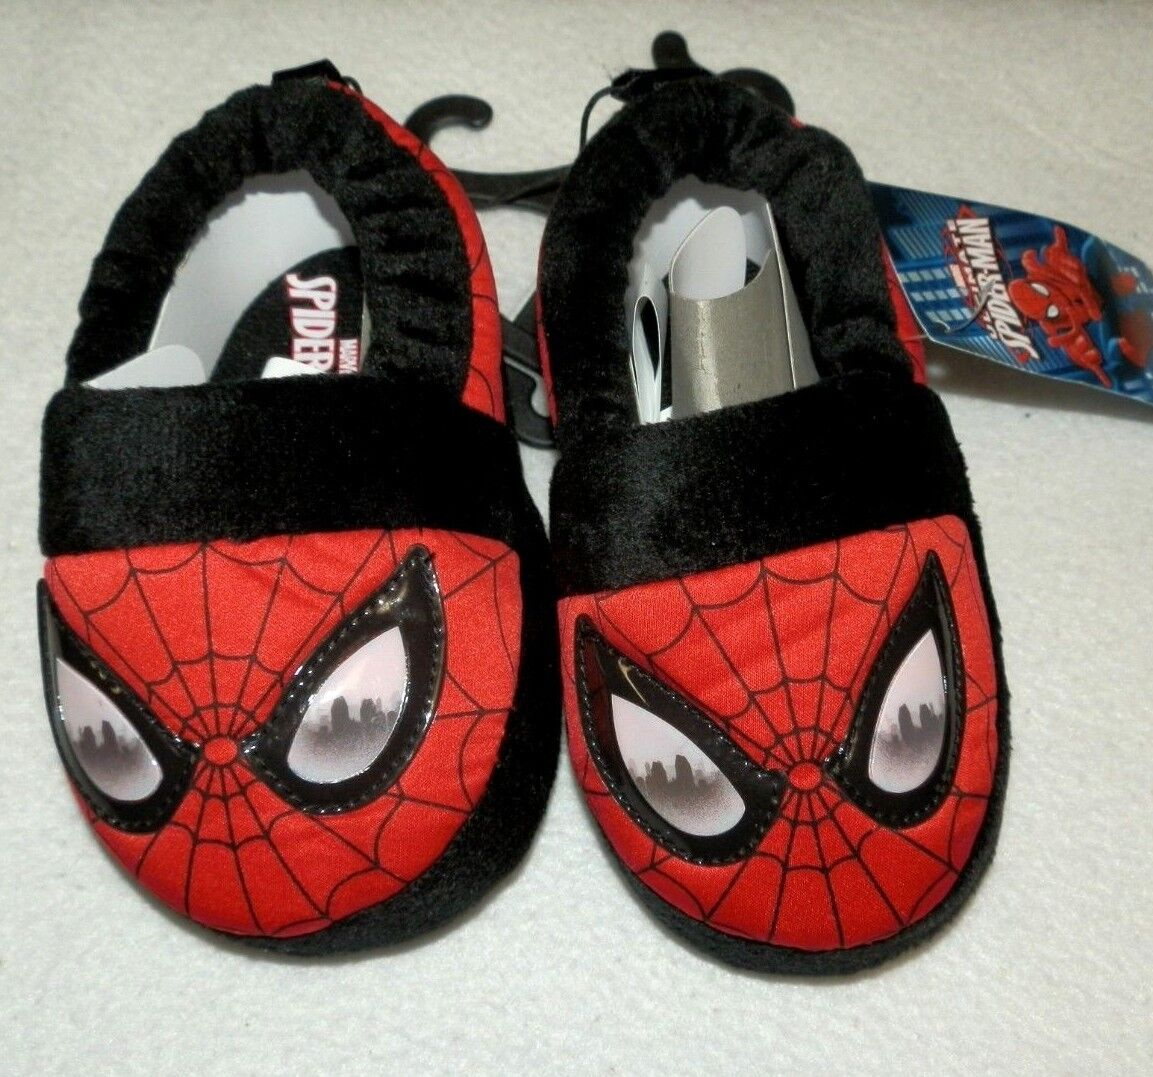 New Baby size 5/6 Spider-Man Slippers Red Non-Skid dots Marv